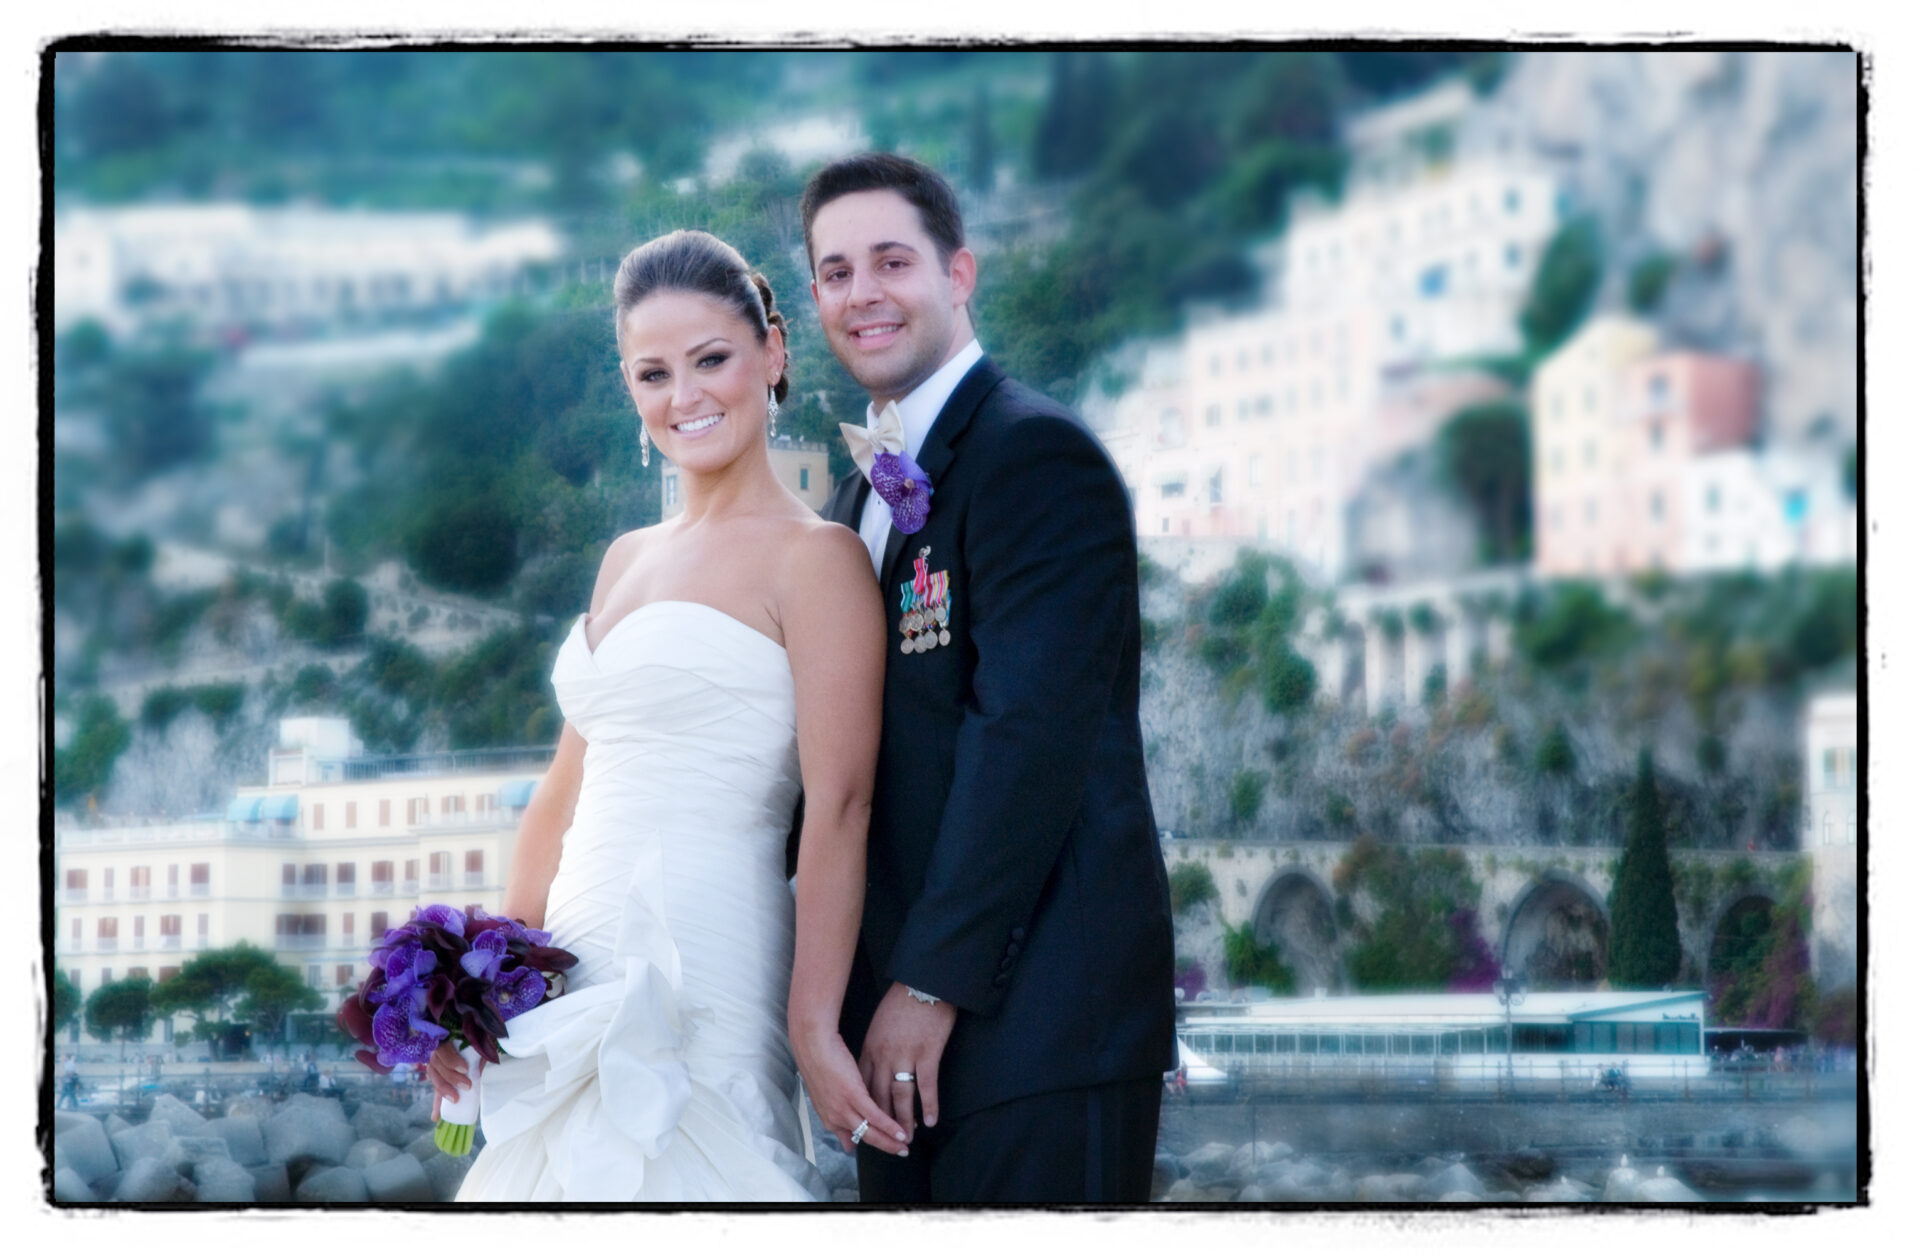 Renewal of Vows in Amalfi